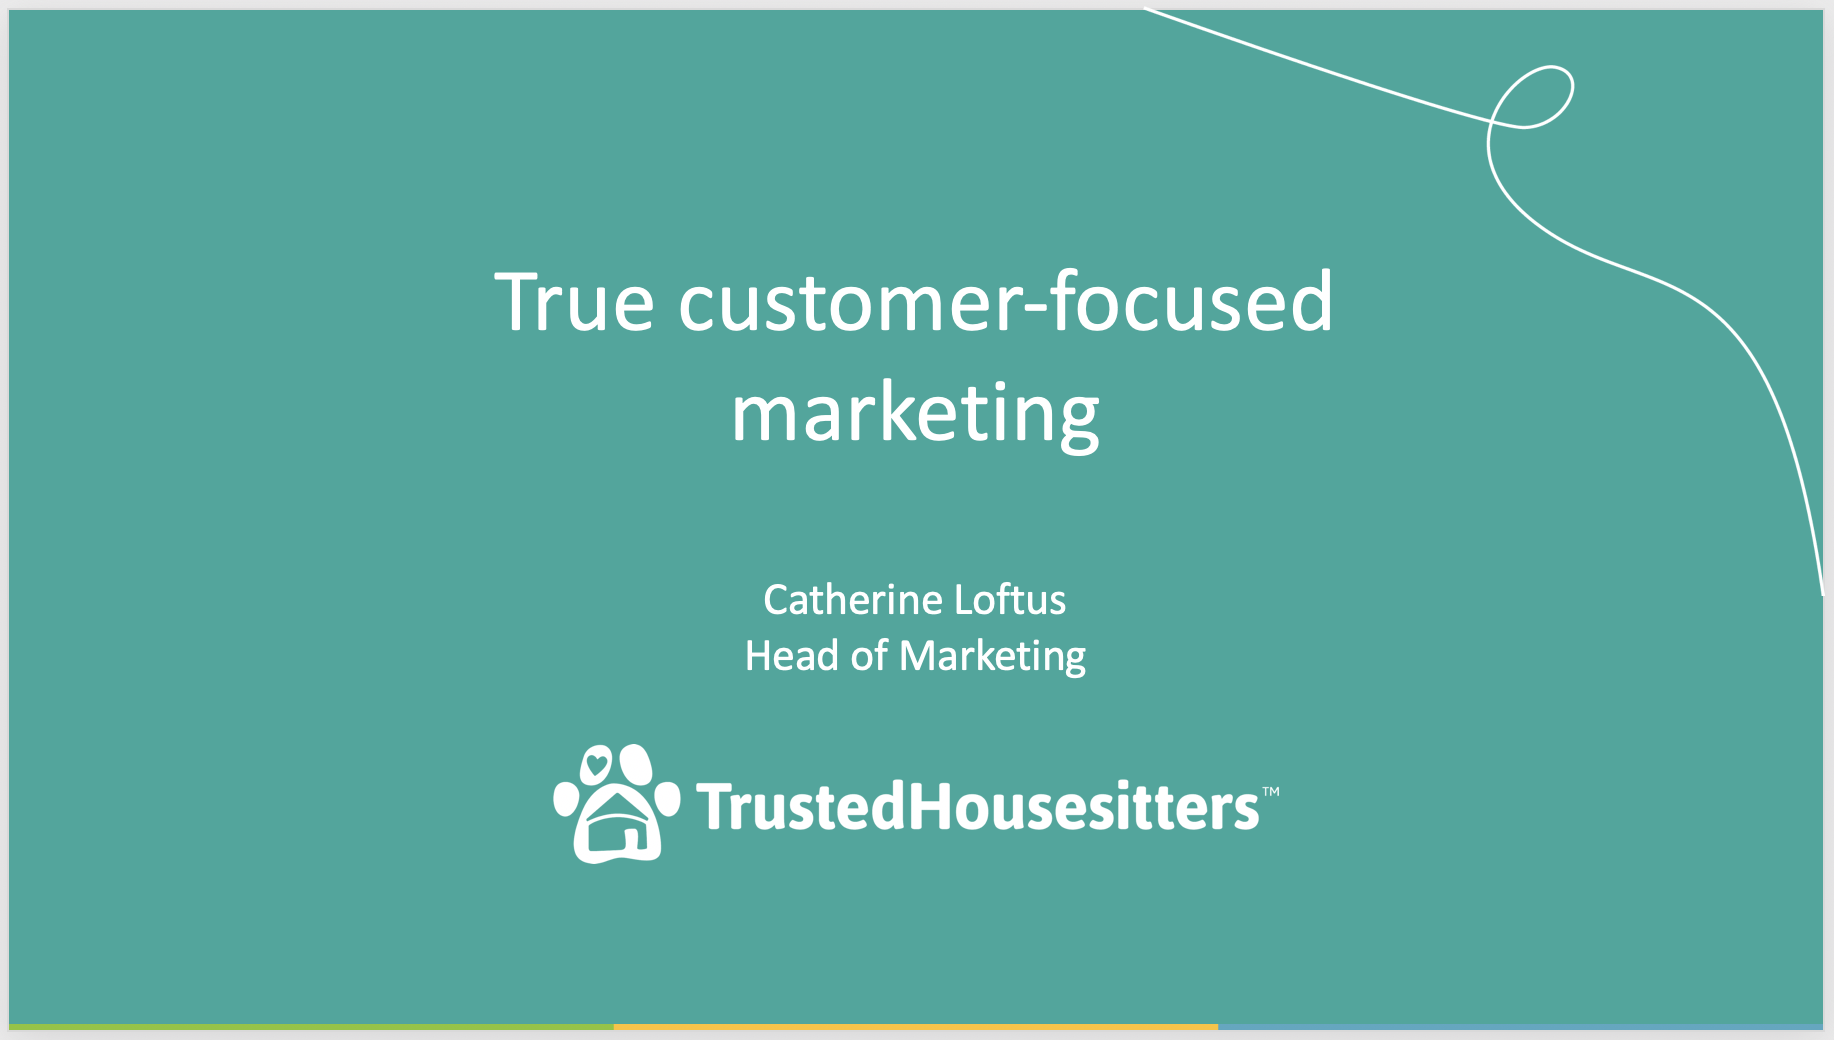 Catherine Loftus Trusted Housesitters presentation